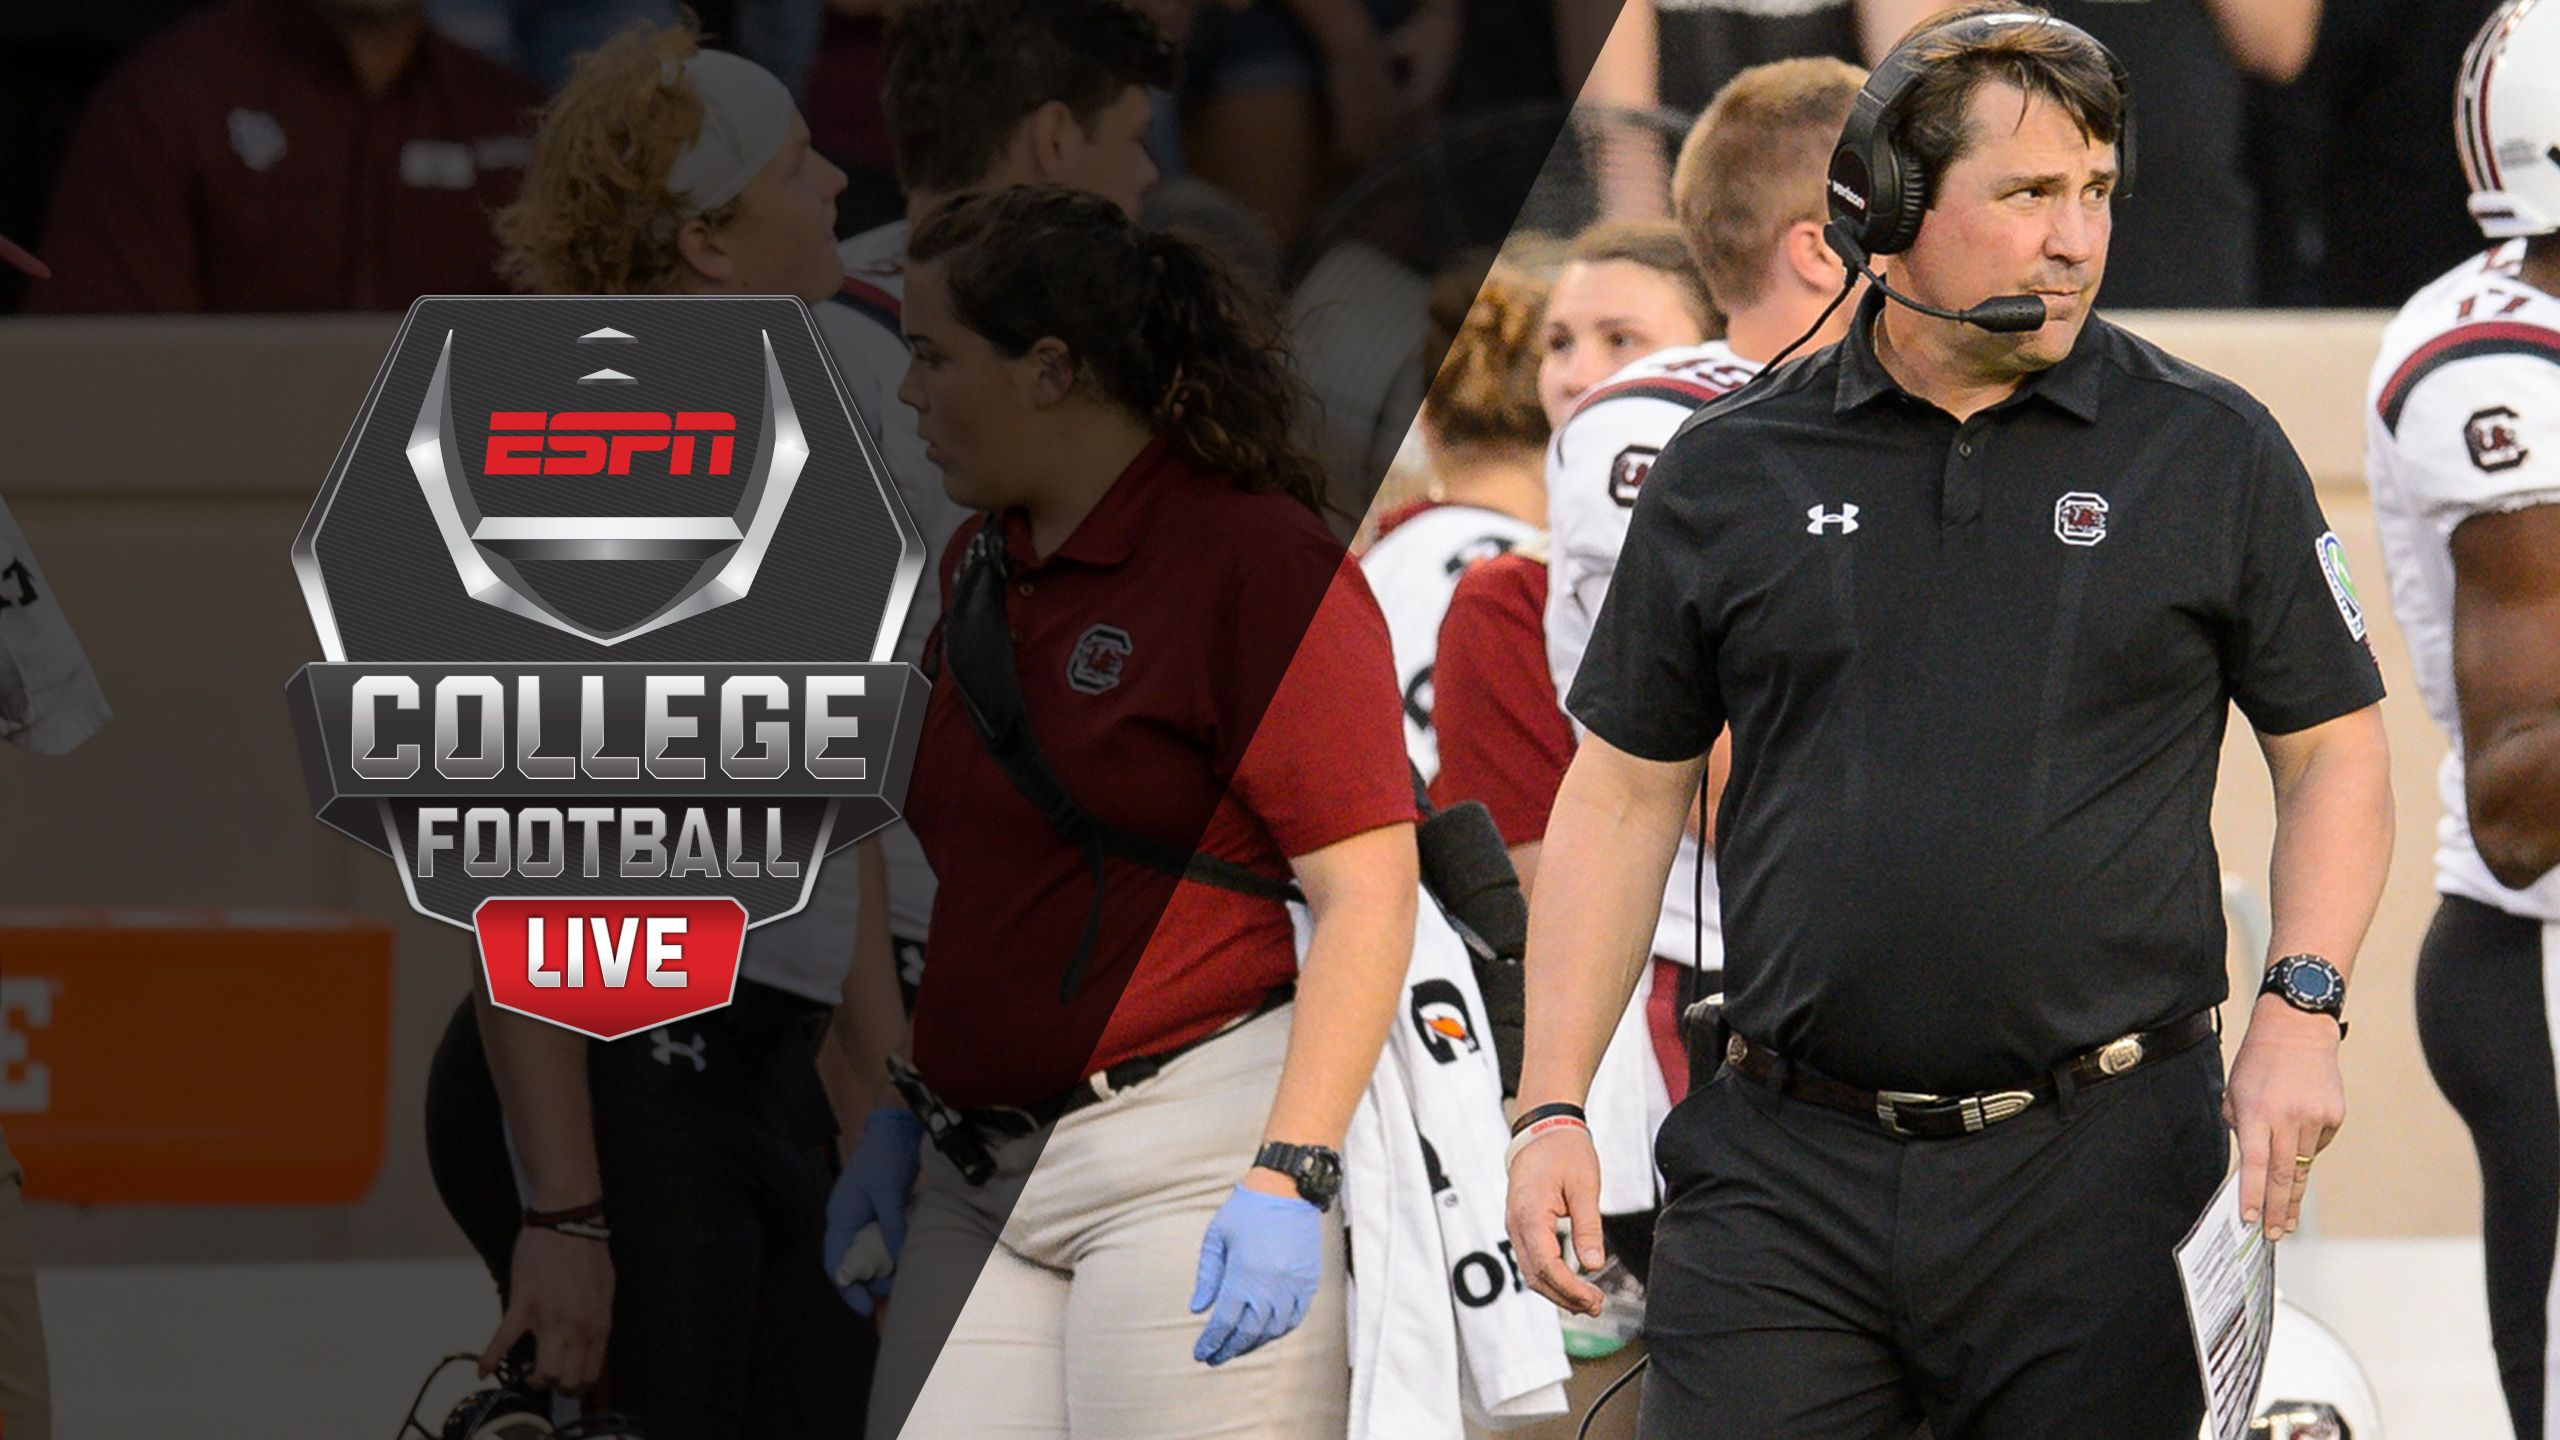 Fri, 7/20 - College Football Live